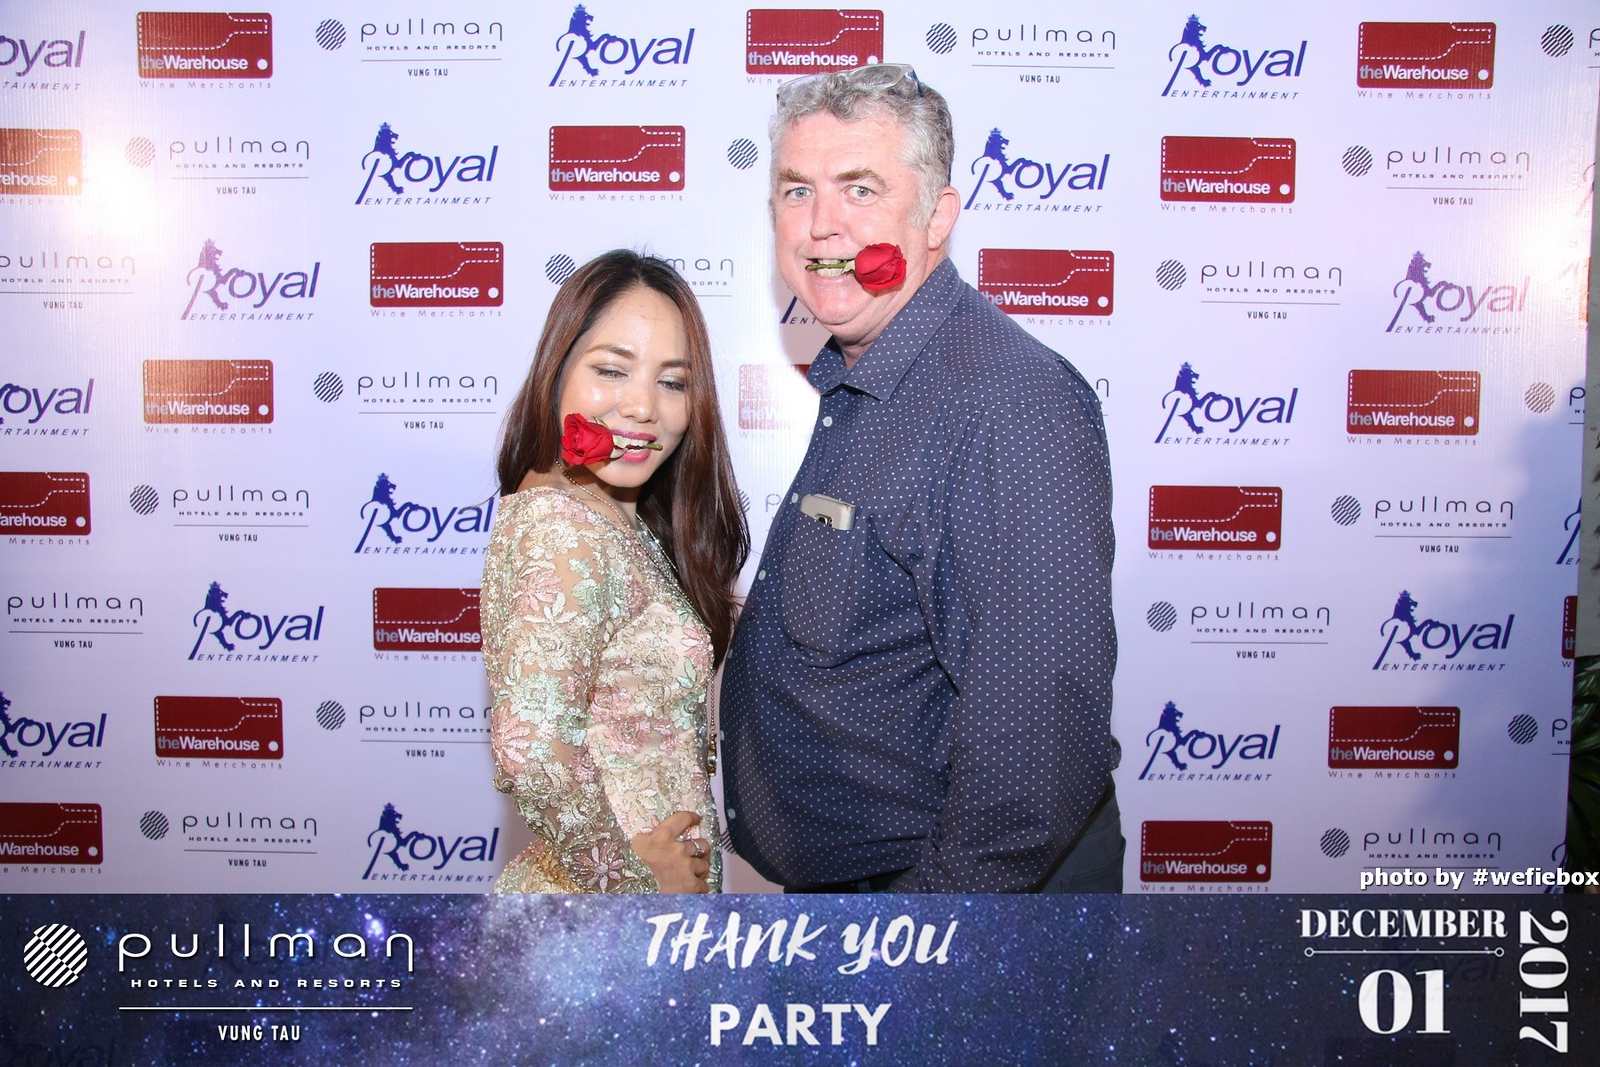 Pullman-Vung-Tau-Thank-You-Party-2017-photobooth-instant-print-chup-anh-lay-lien-su-kien-tiec-cuoi-060